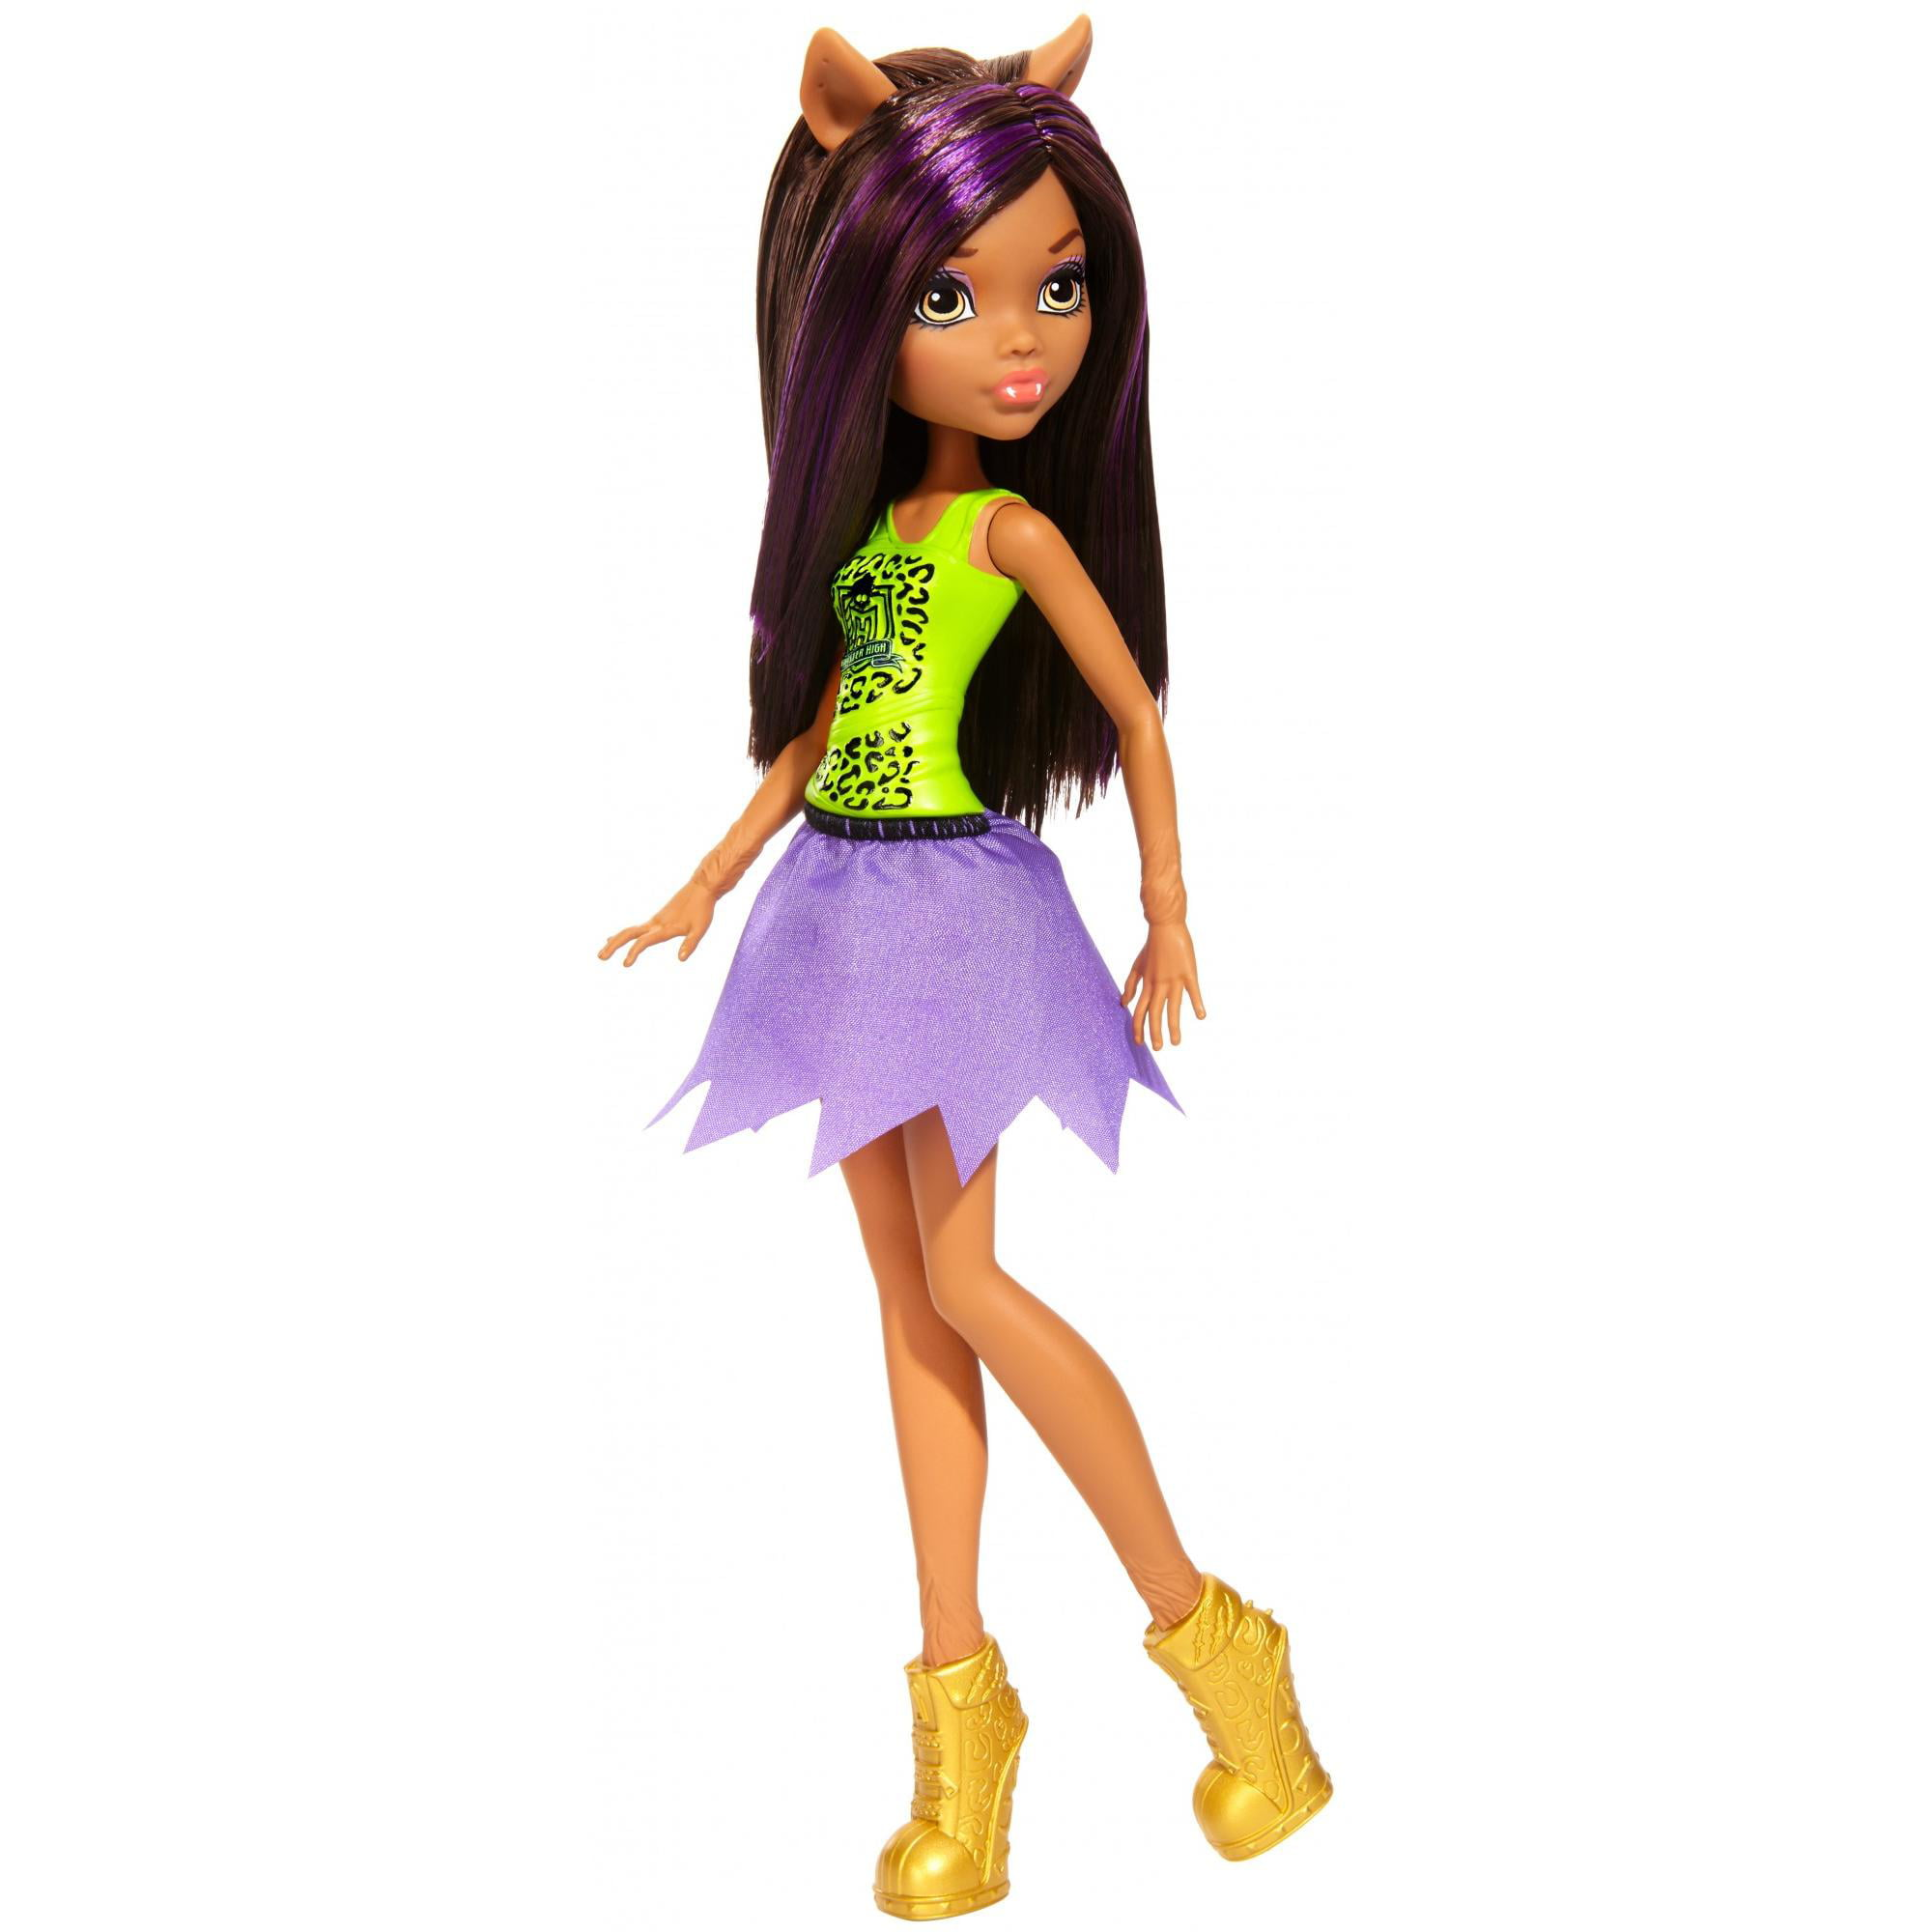 Monster High Cheerleader Clawdeen Wolf Doll by MATTEL INC.